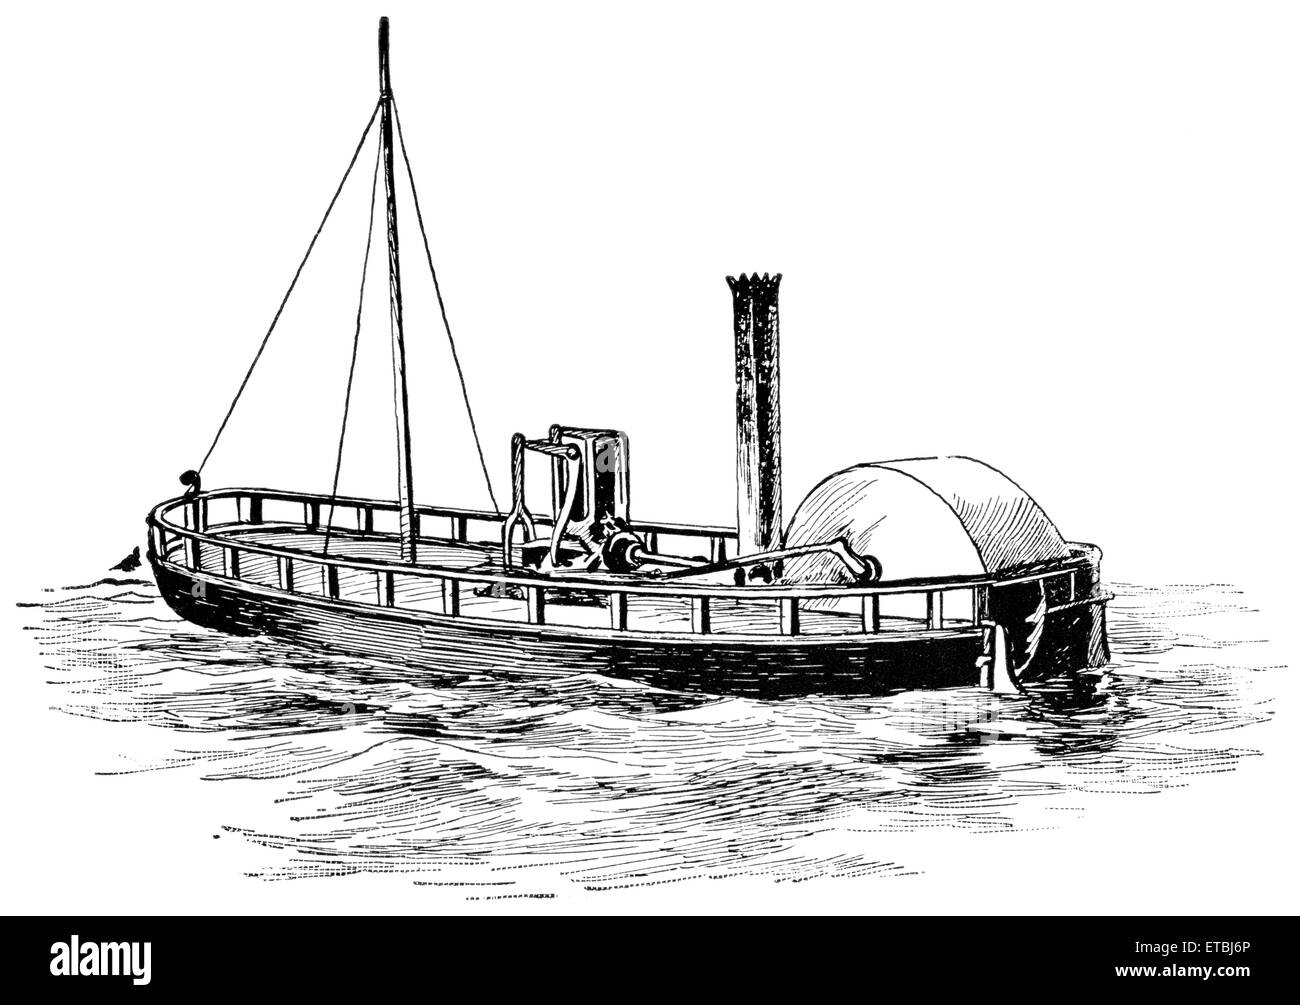 The First Steam Boat